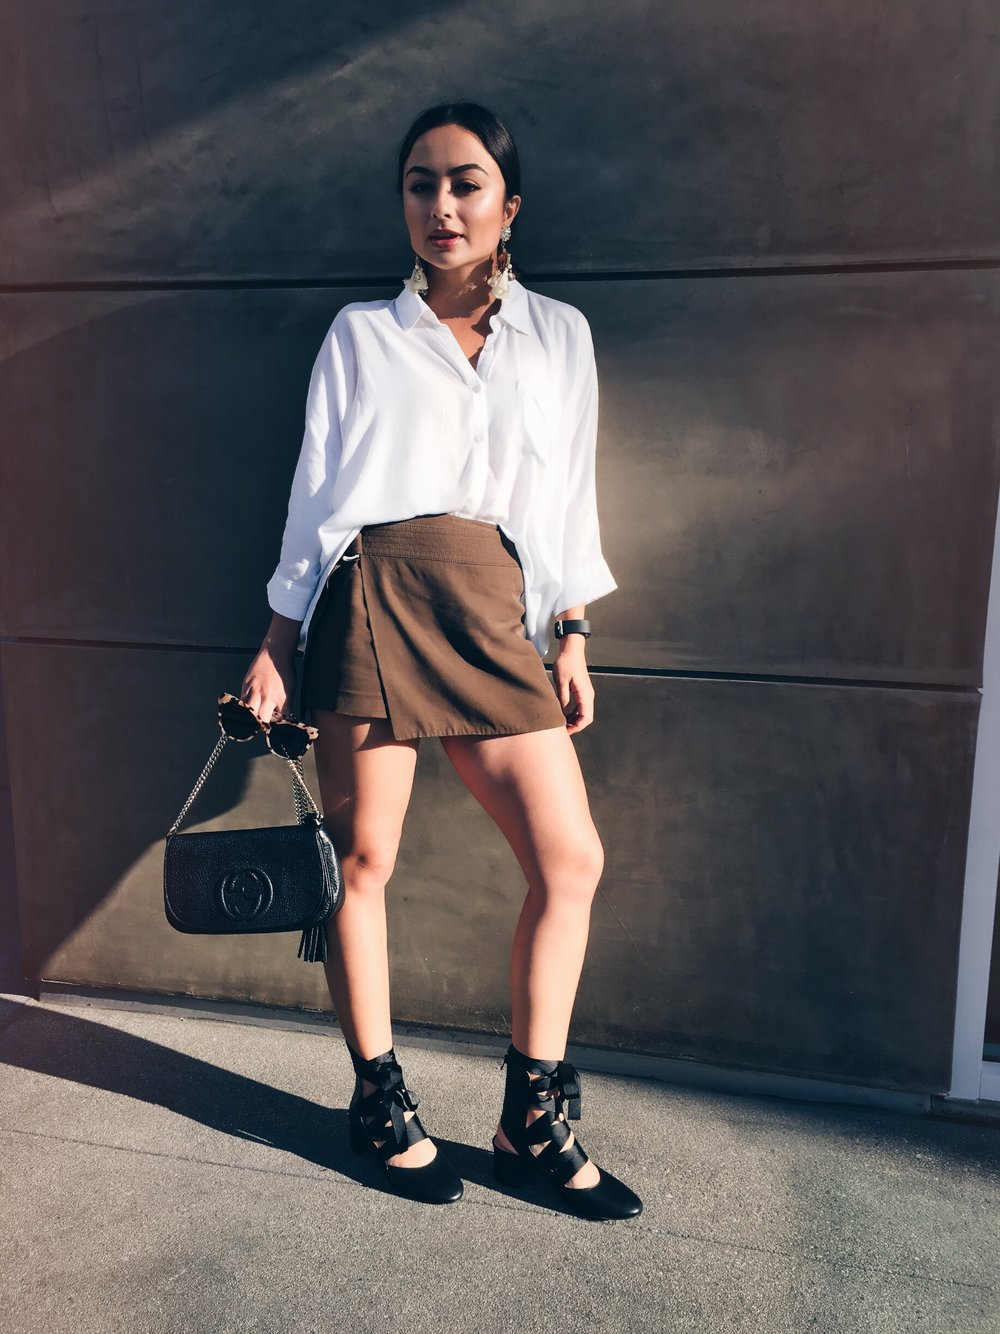 Shirt, skort, earrings H&M  Sunglasses Urban Outfitters  Bag Gucci  Shoes Zara